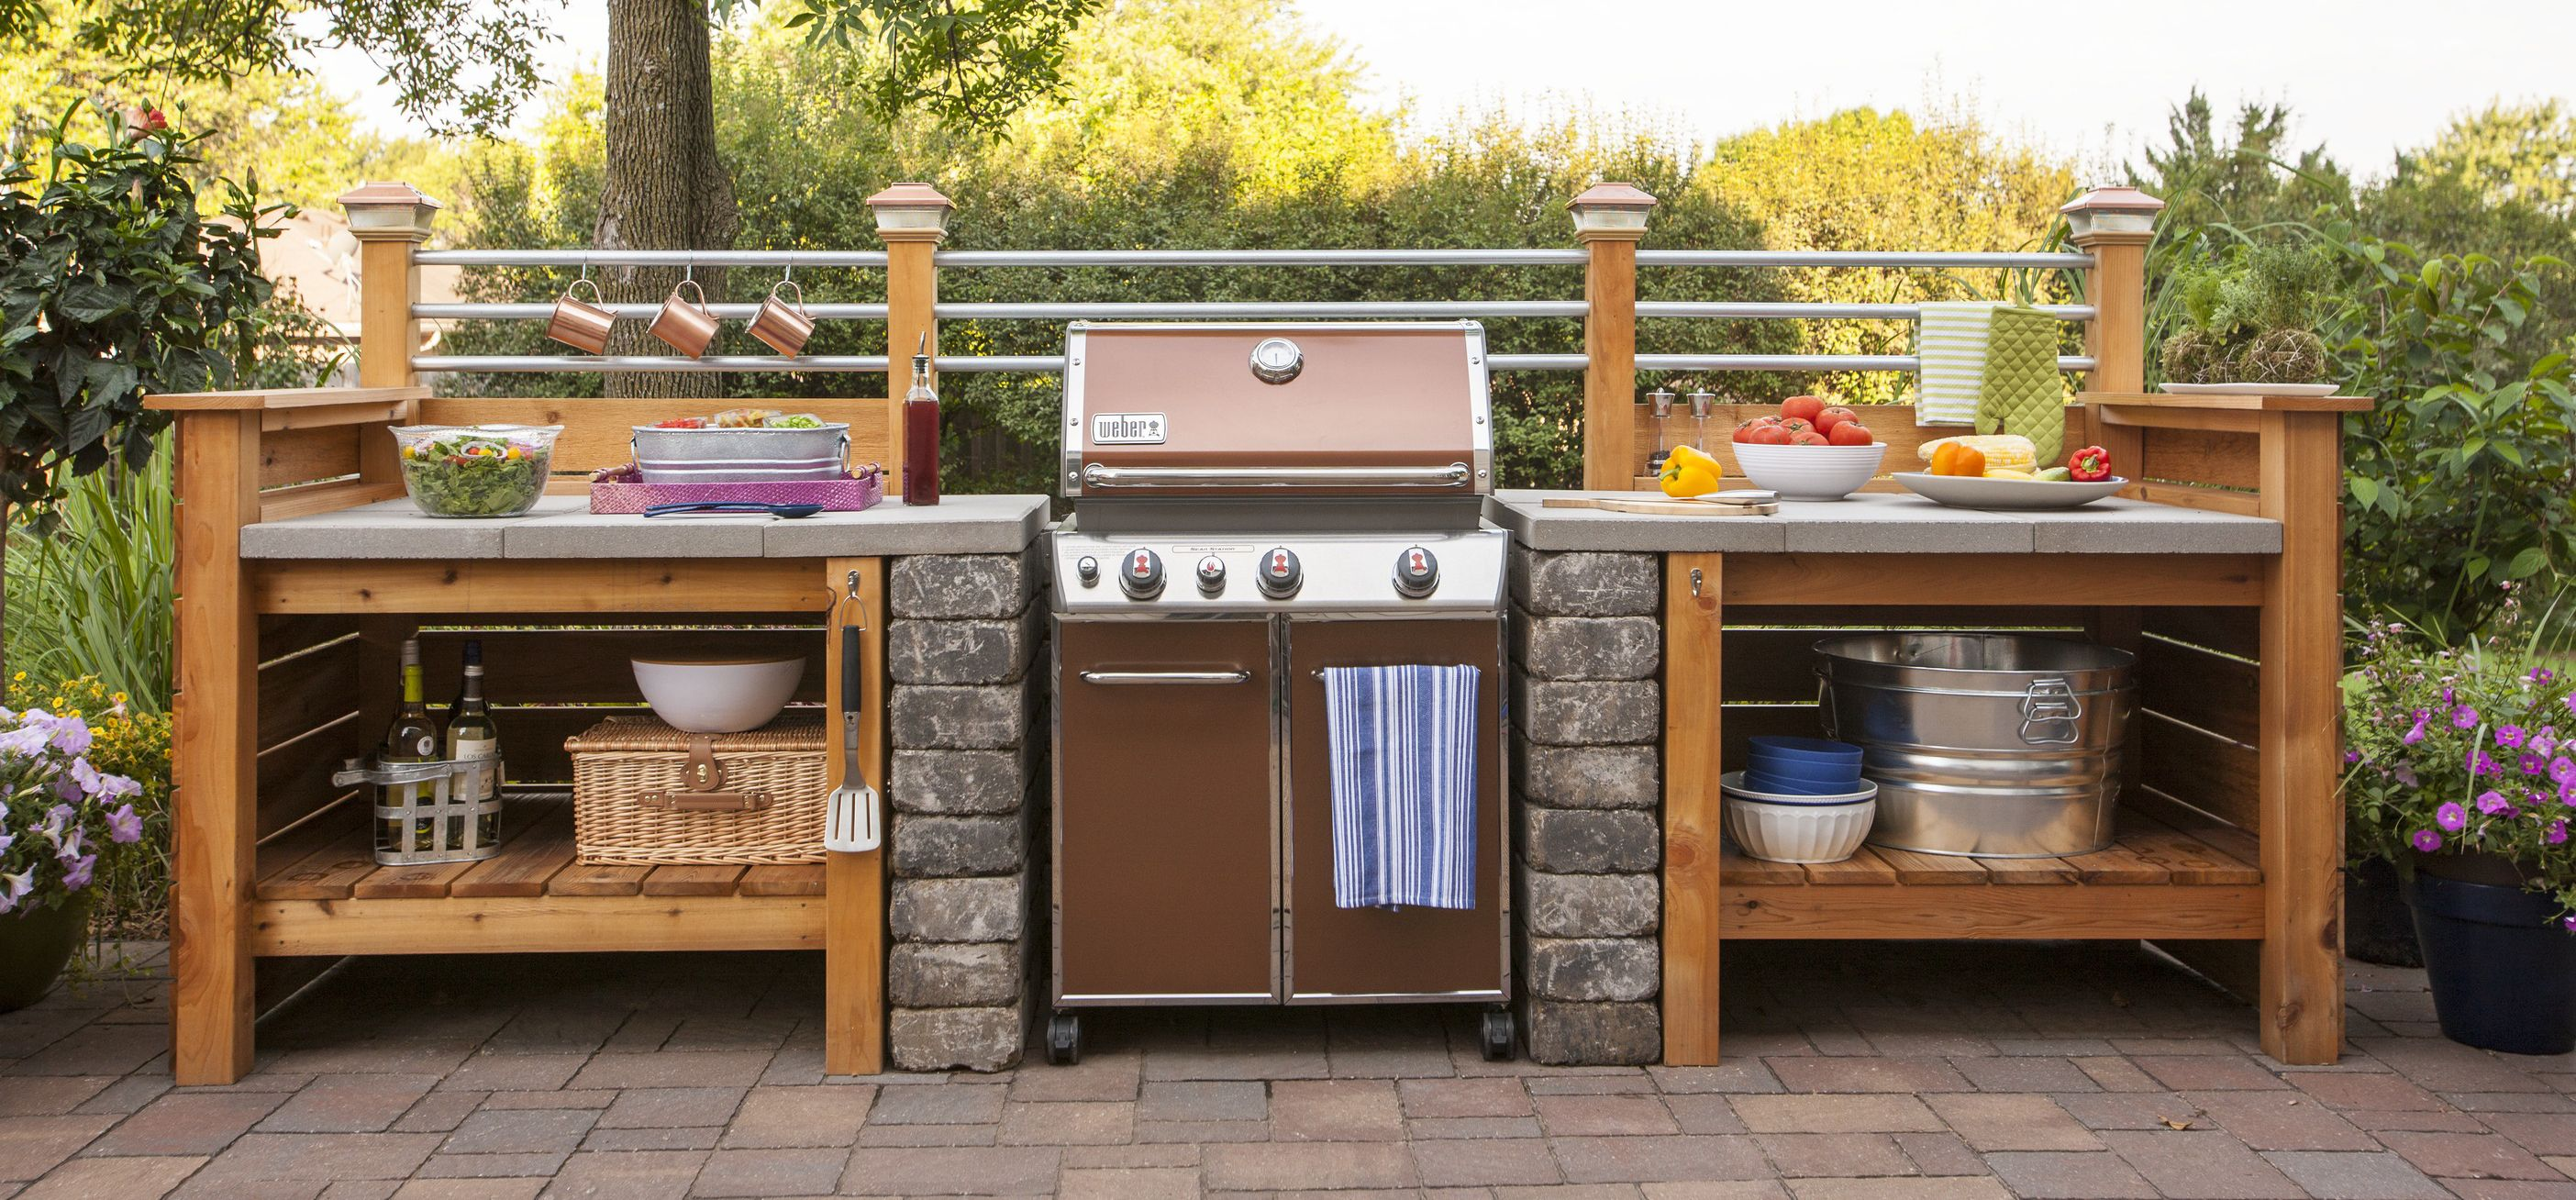 Backyard Patio Kitchen With Images Outdoor Kitchen Patio Kitchen Diy Outdoor Kitchen